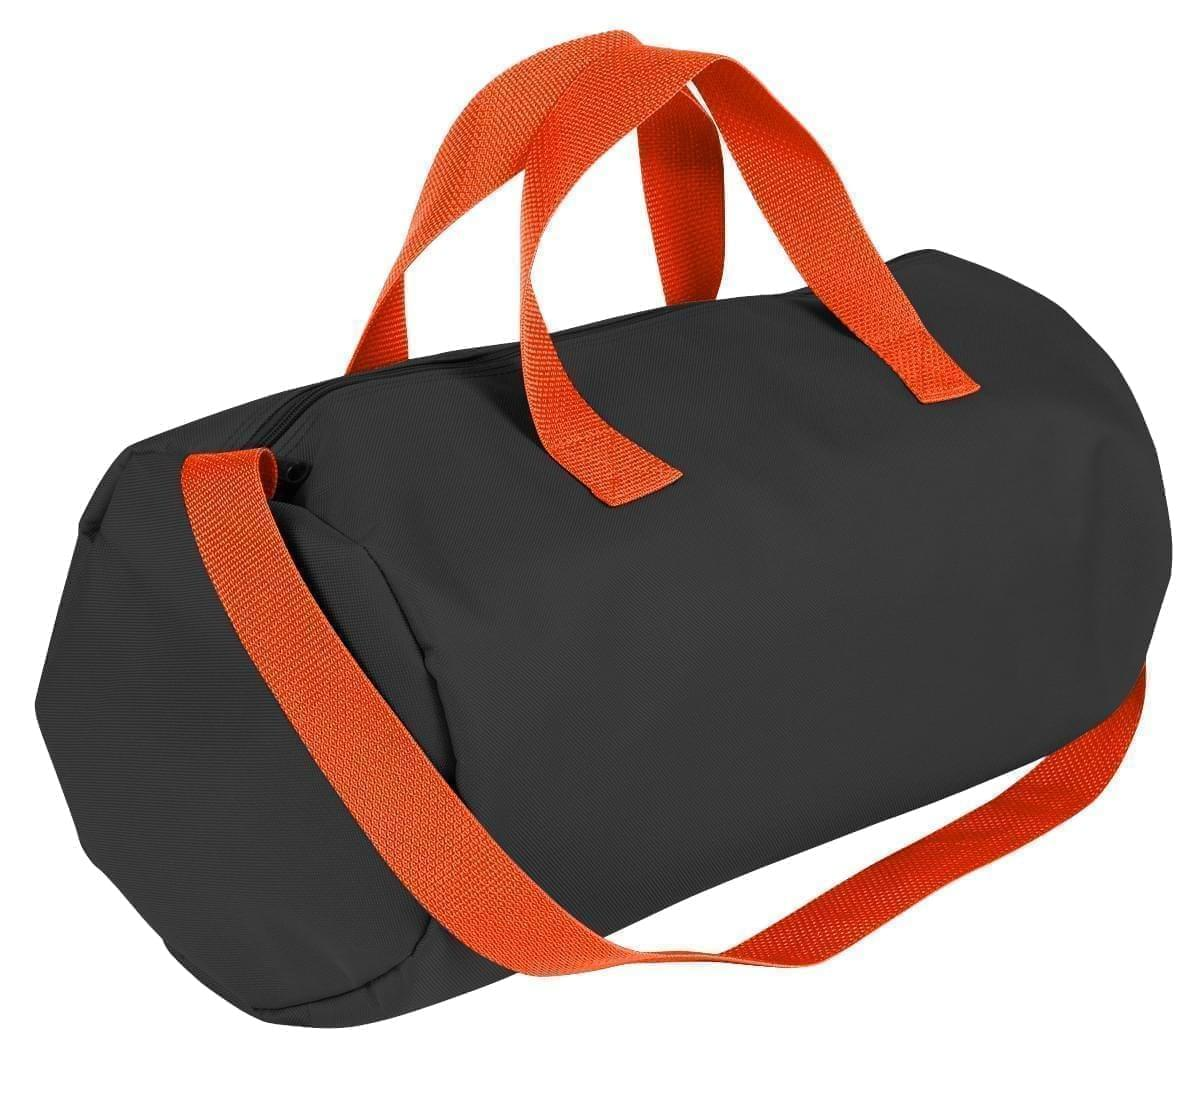 USA Made Nylon Poly Gym Roll Bags, Black-Orange, ROCX31AAO0